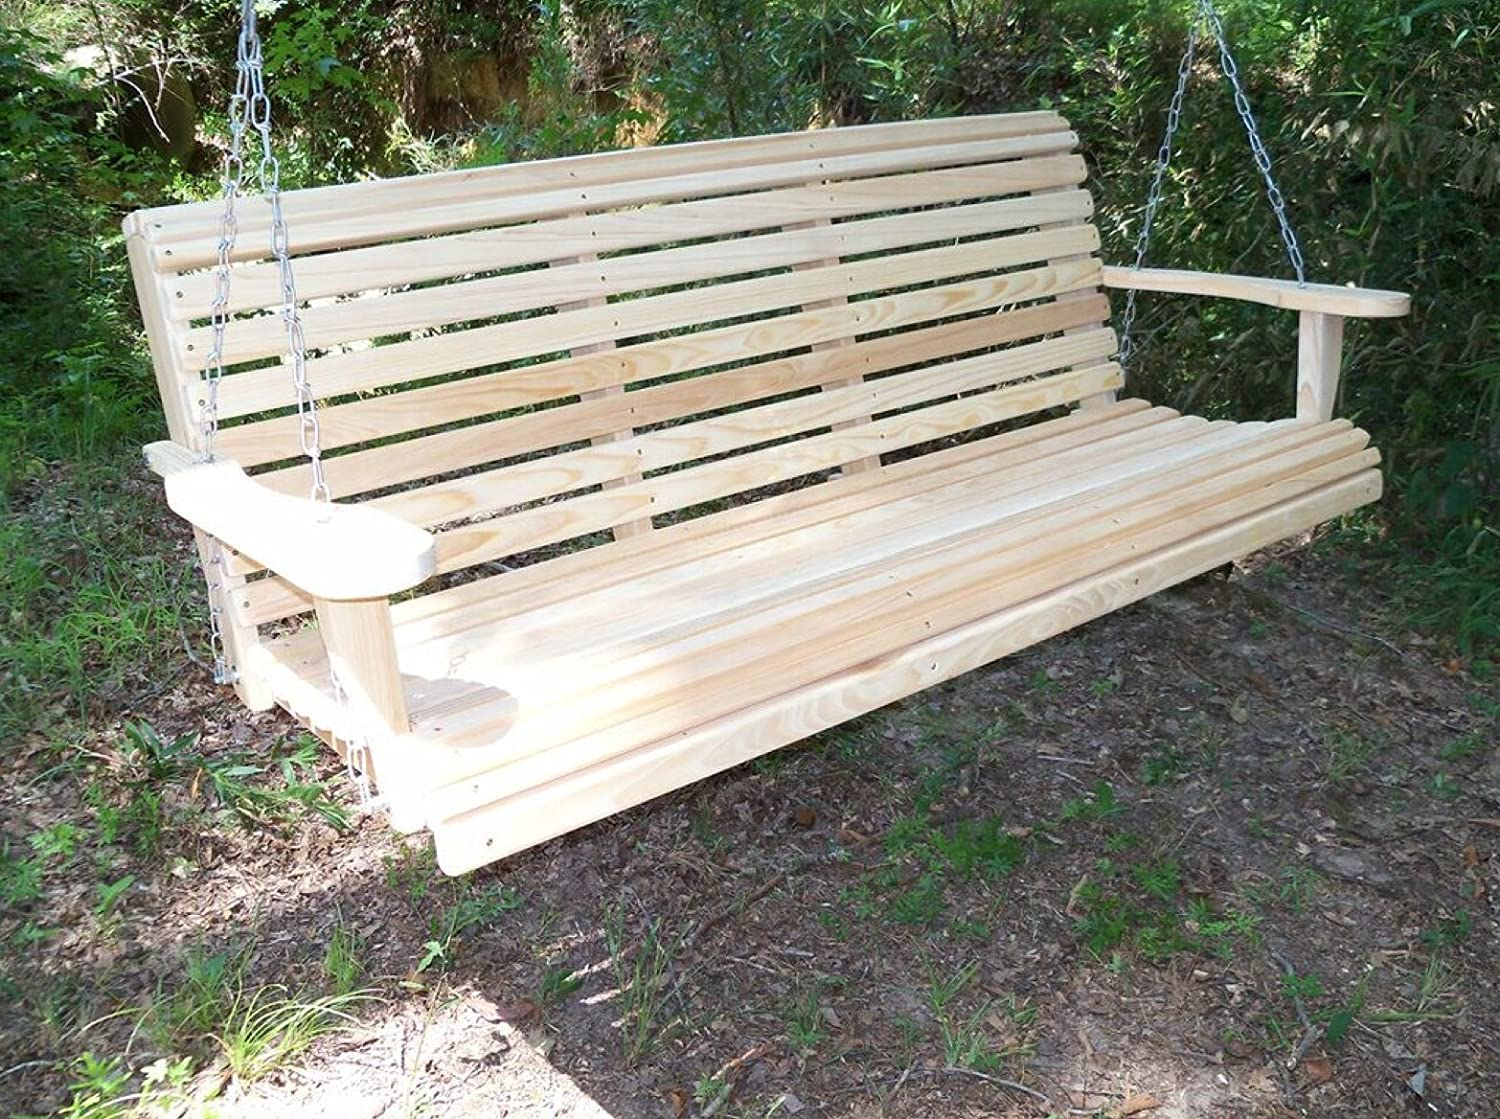 Amazon.com : 5 Ft ROLL BACK PORCH SWING made from Rot-resistant ...